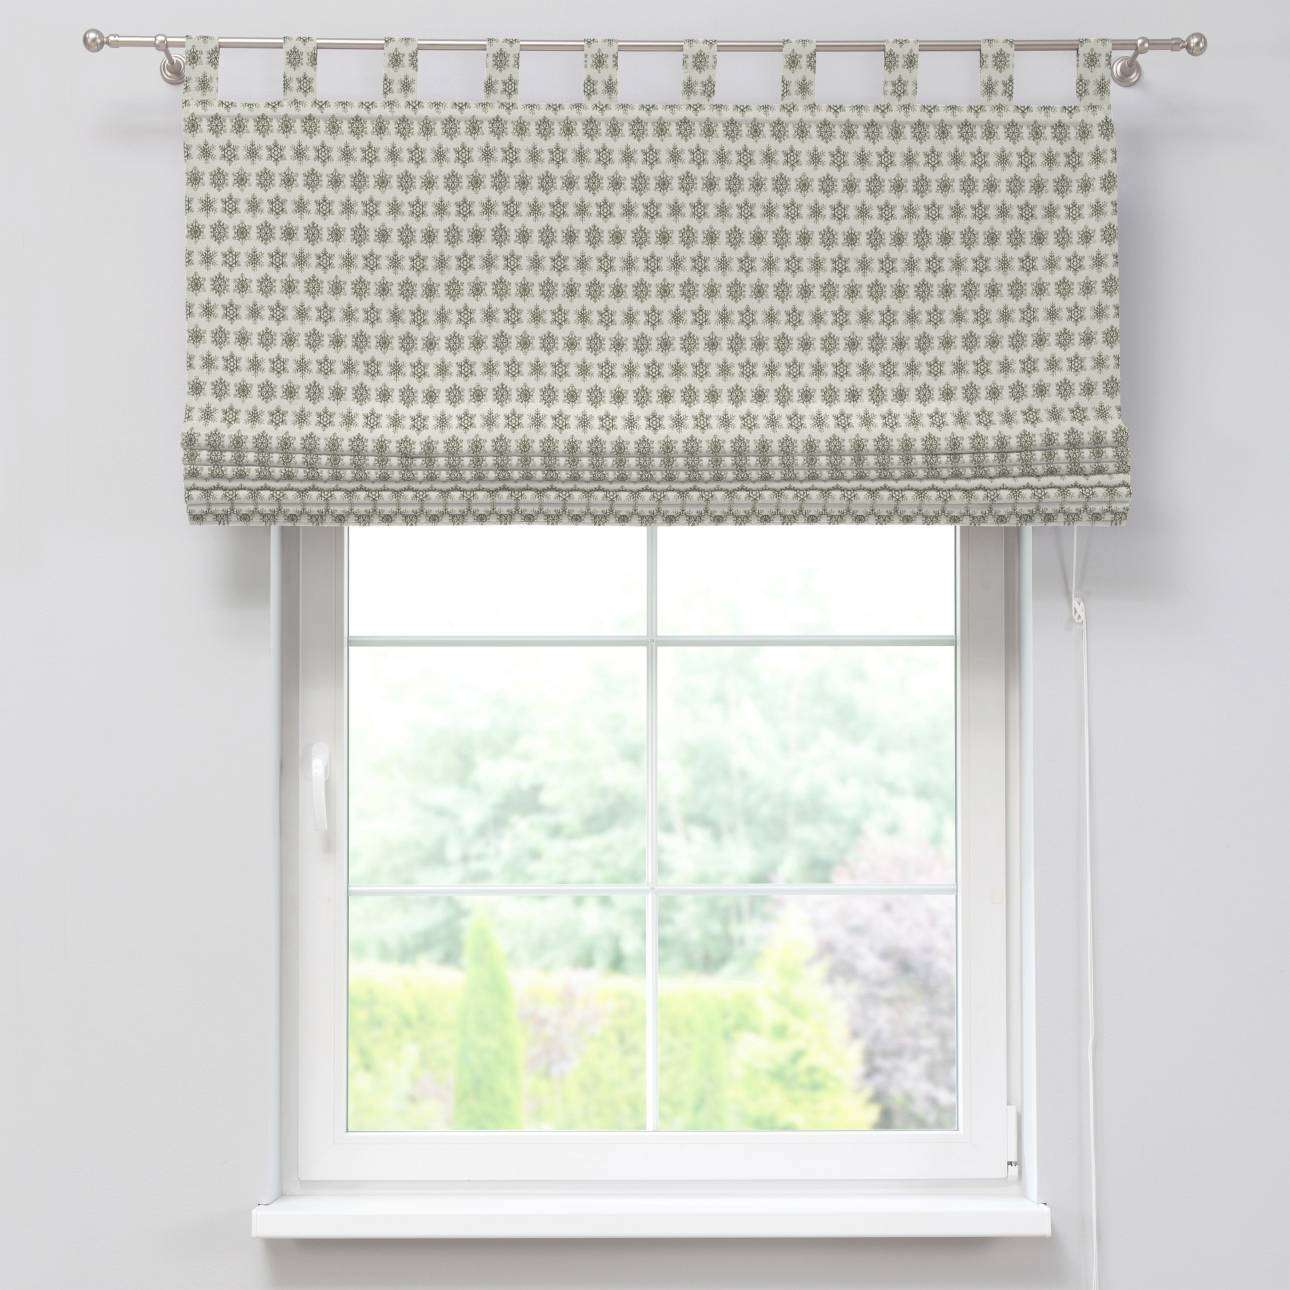 Verona tab top roman blind 80 x 170 cm (31.5 x 67 inch) in collection Christmas , fabric: 630-26